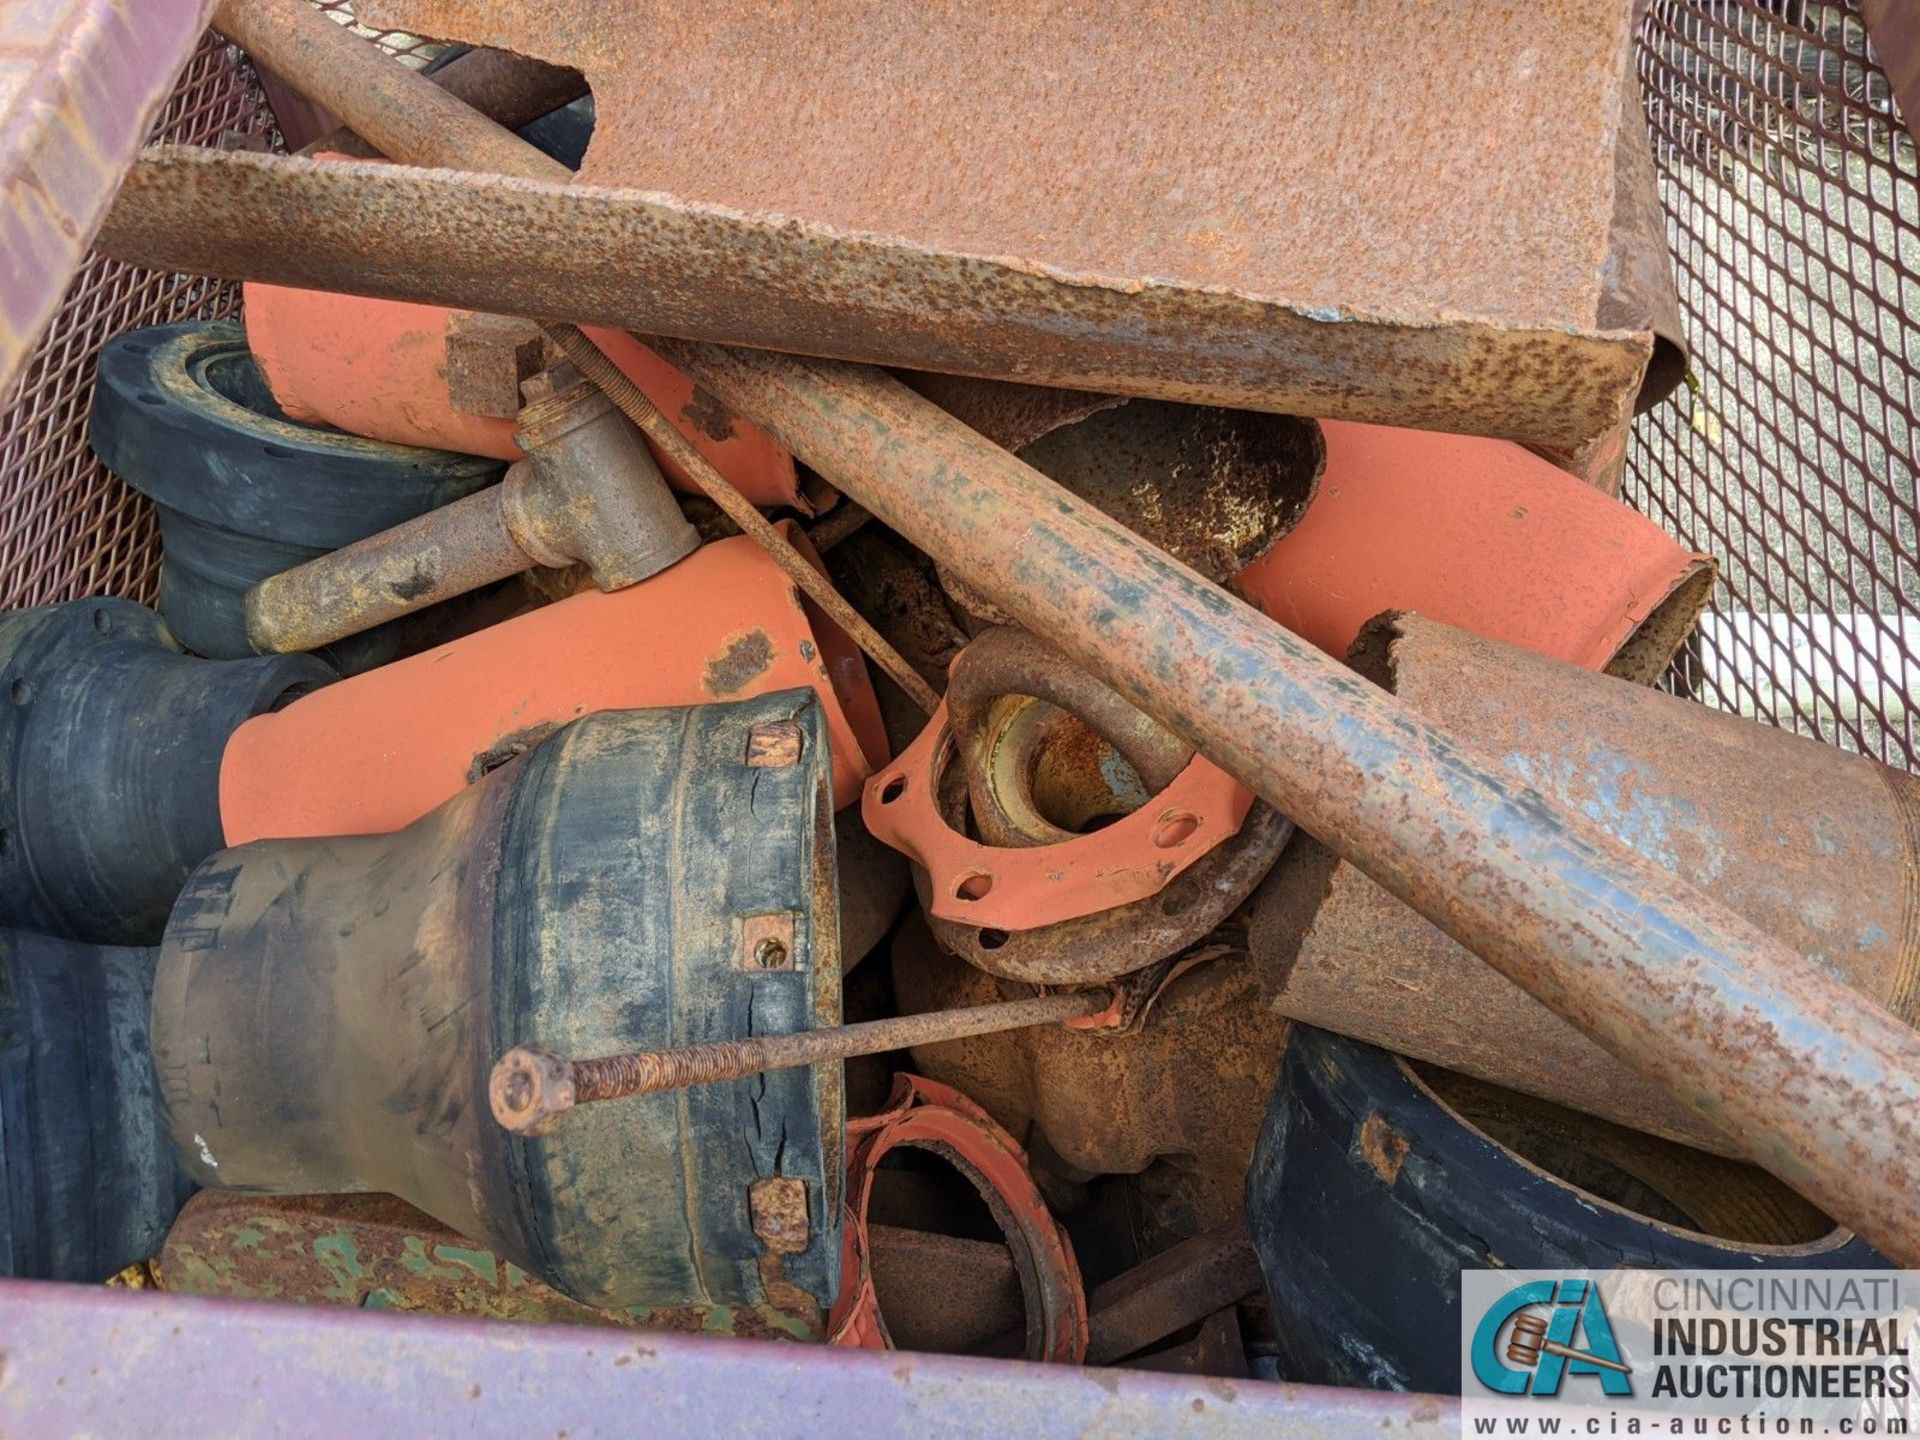 (LOT) USED OIL DRILL BITS ON (2) DRUMS & (2) STEEL CRATES W/ PIPE CAT-OFFS (8635 East Ave., - Image 4 of 5